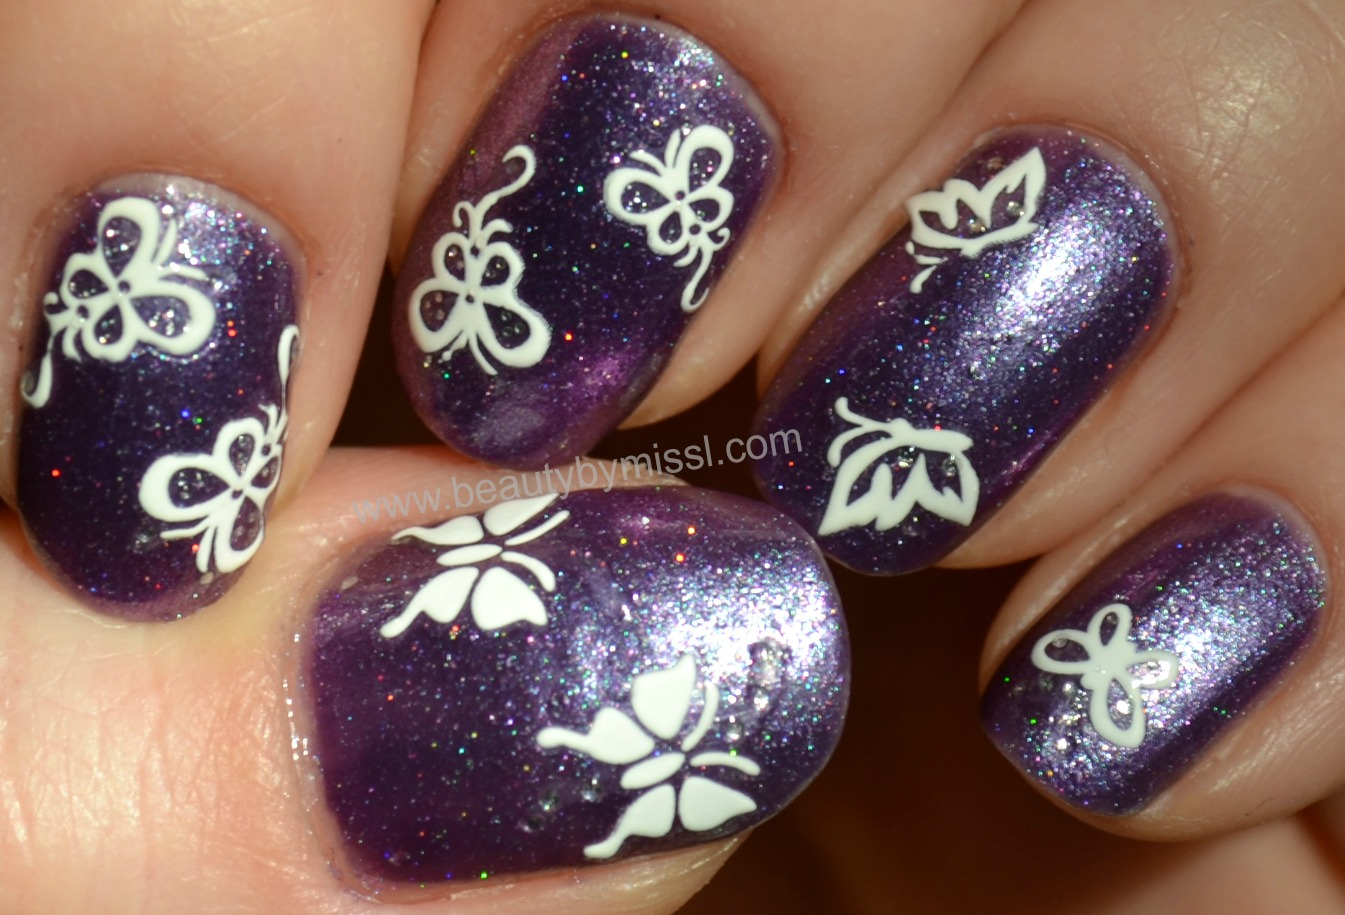 nail art stickers from eBay, nails of the day, simple manicure